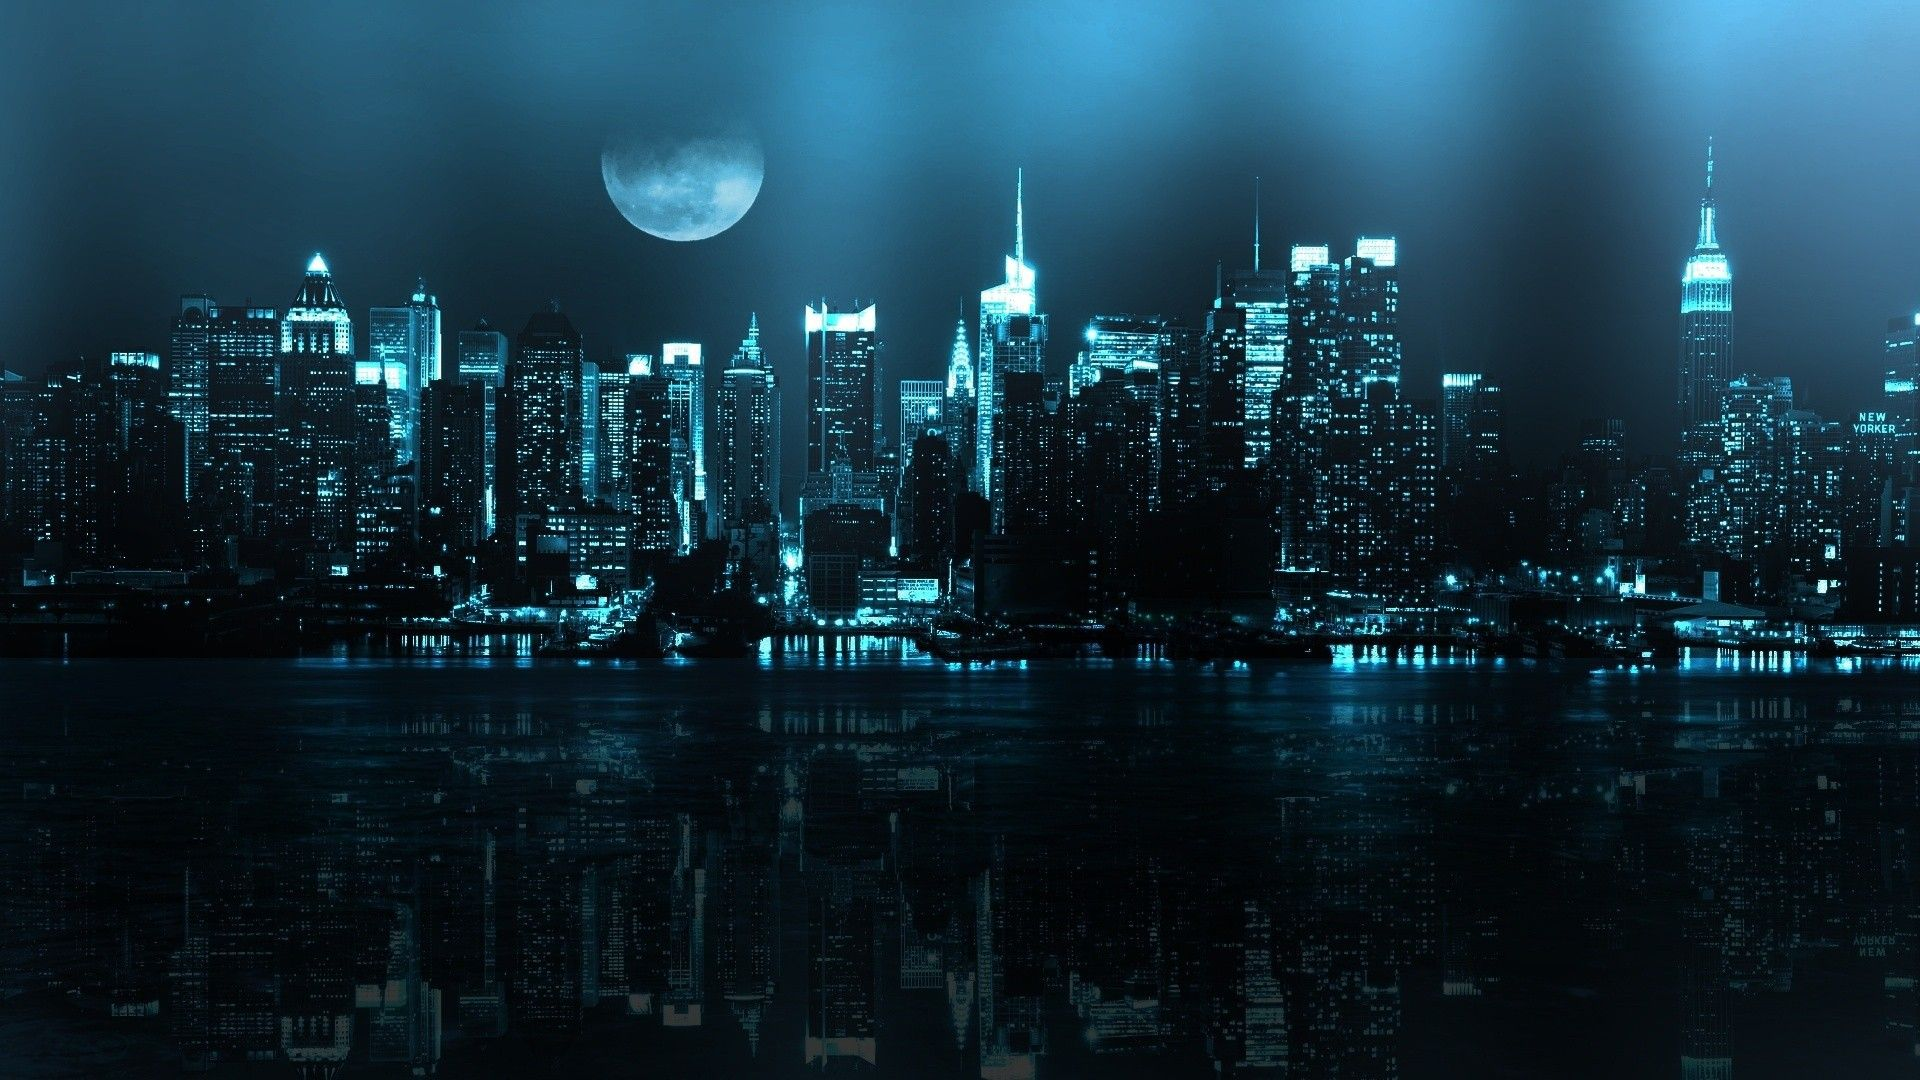 Night City Wallpapers High Resolution For Desktop 1920x1080 Px 437 68 Kb Cool Desktop Backgrounds City Wallpaper Desktop Wallpapers Backgrounds